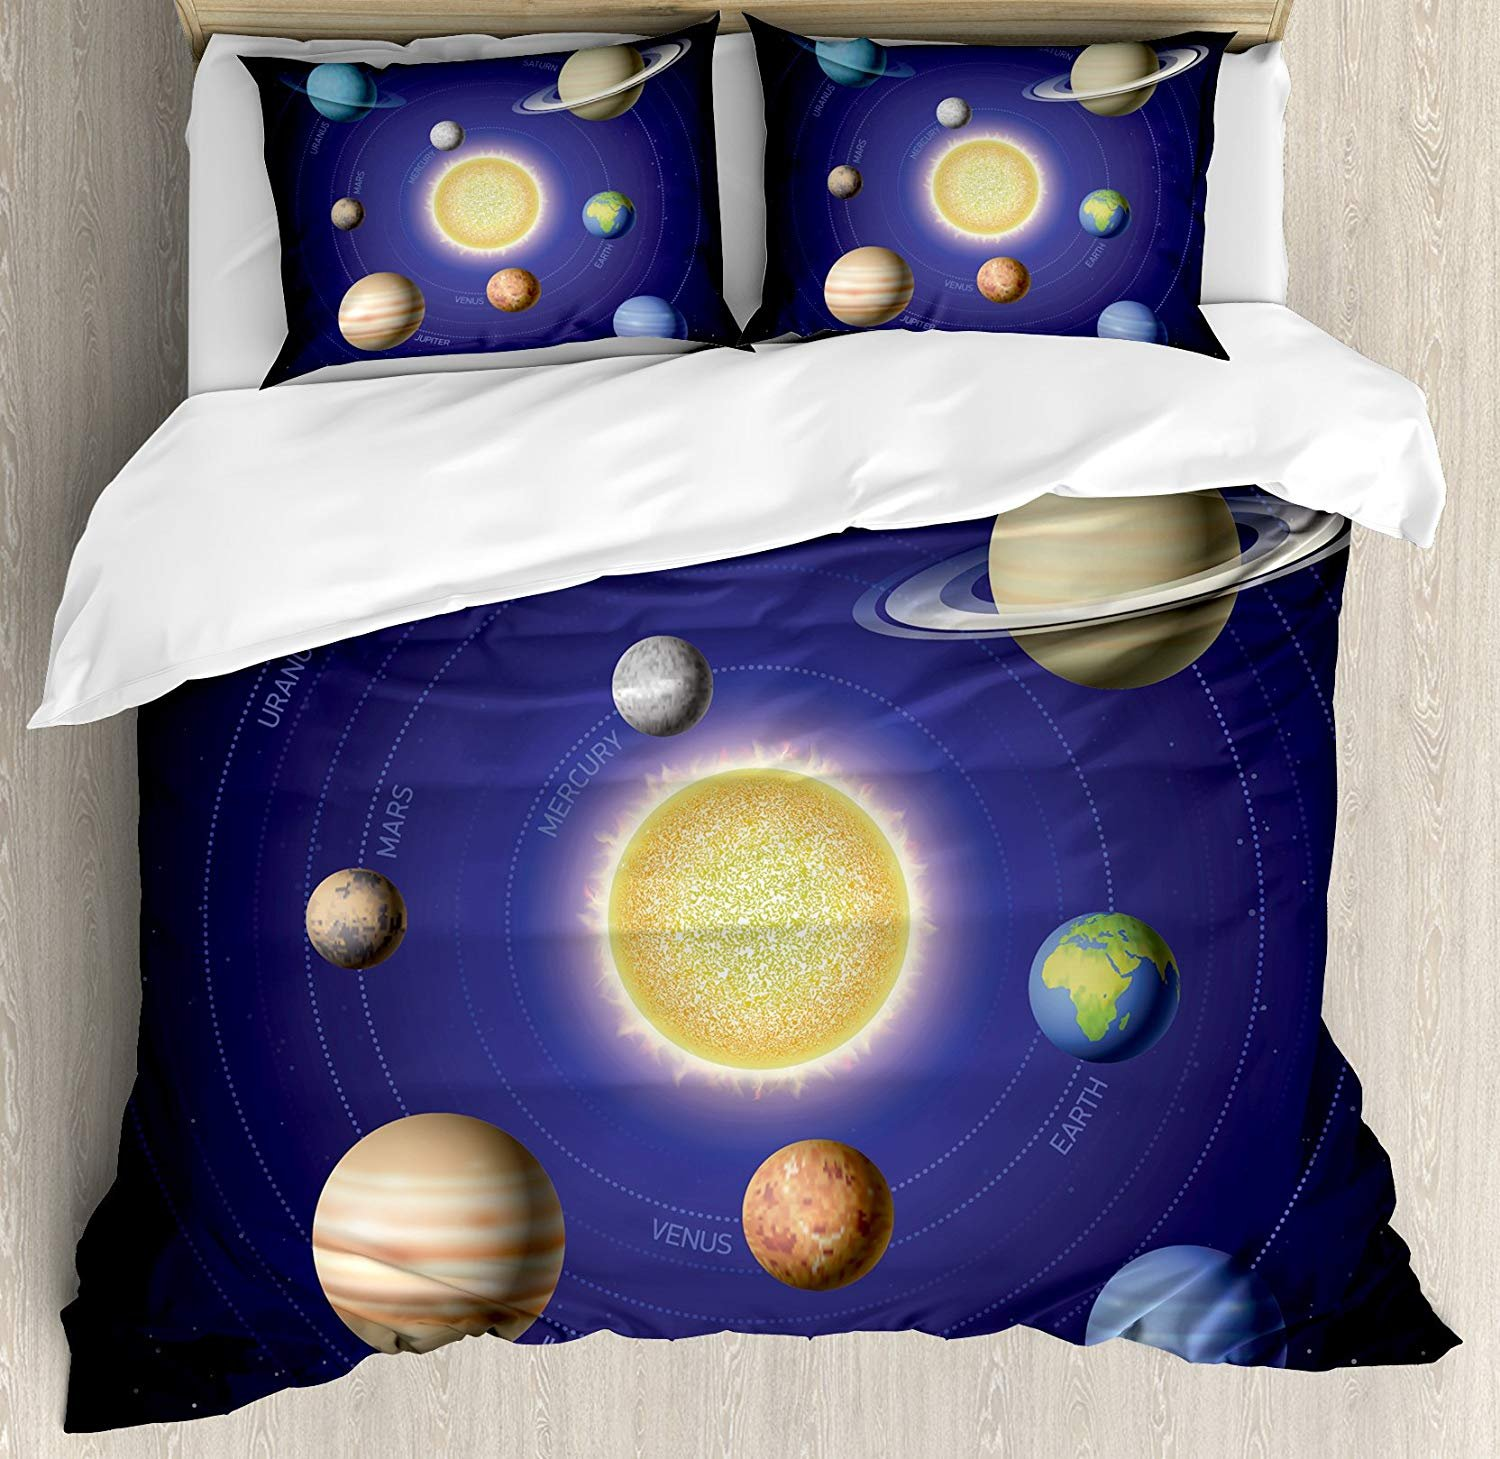 Space Twin Duvet Cover Sets 4 Piece Bedding Set Bedspread with 2 Pillow Sham, Flat Sheet for Adult/Kids/Teen, Solar System Illustration Showing Planets around Sun Harmony of Galaxy Science Room Image